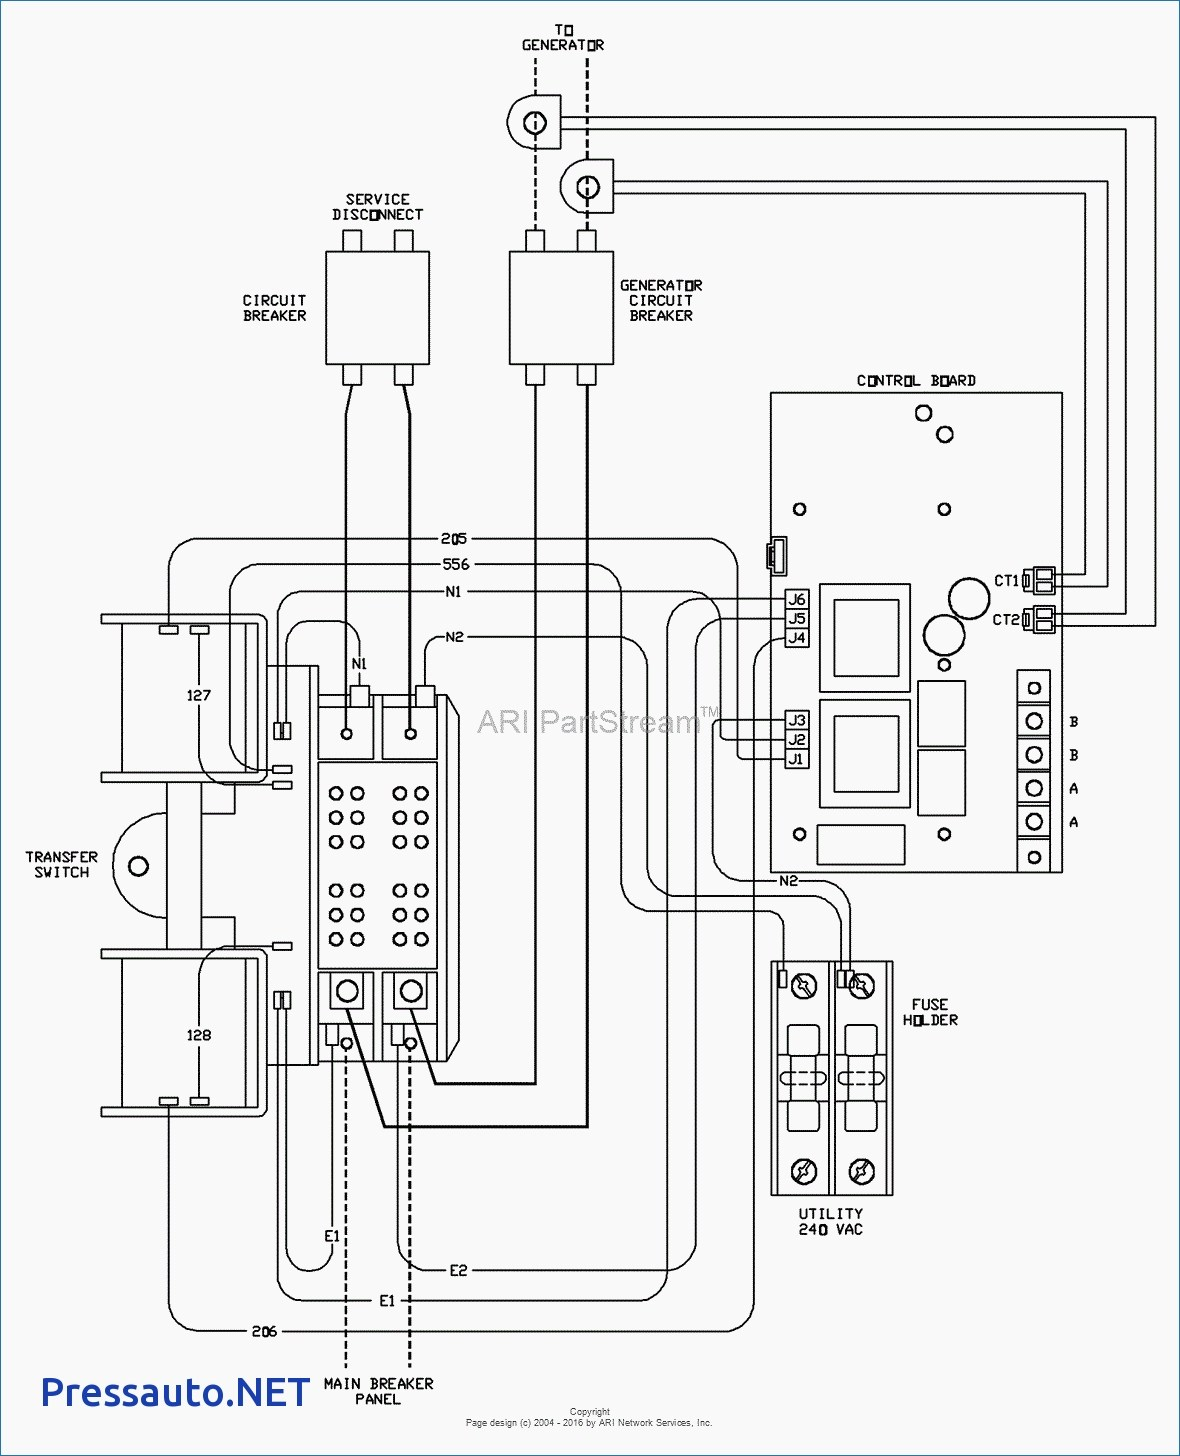 transfer switch wiring diagram Collection-Whole House Transfer Switch Wiring Diagram Beautiful Generator Manual Transfer Switch Wiring Diagram 15-t